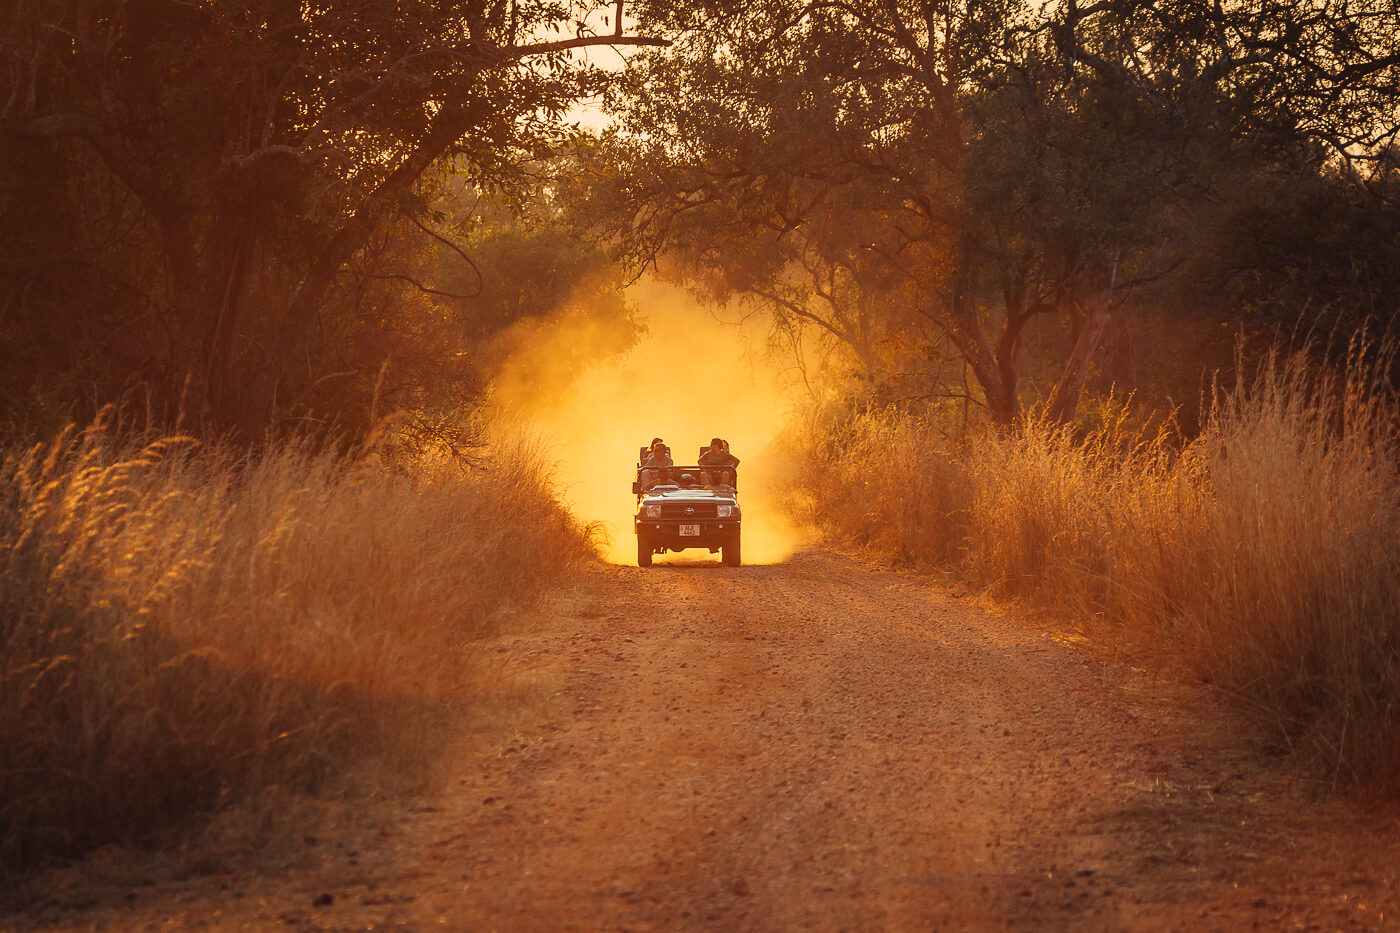 Game drive South Luangwa National Park Zambia (Bryan Geli)